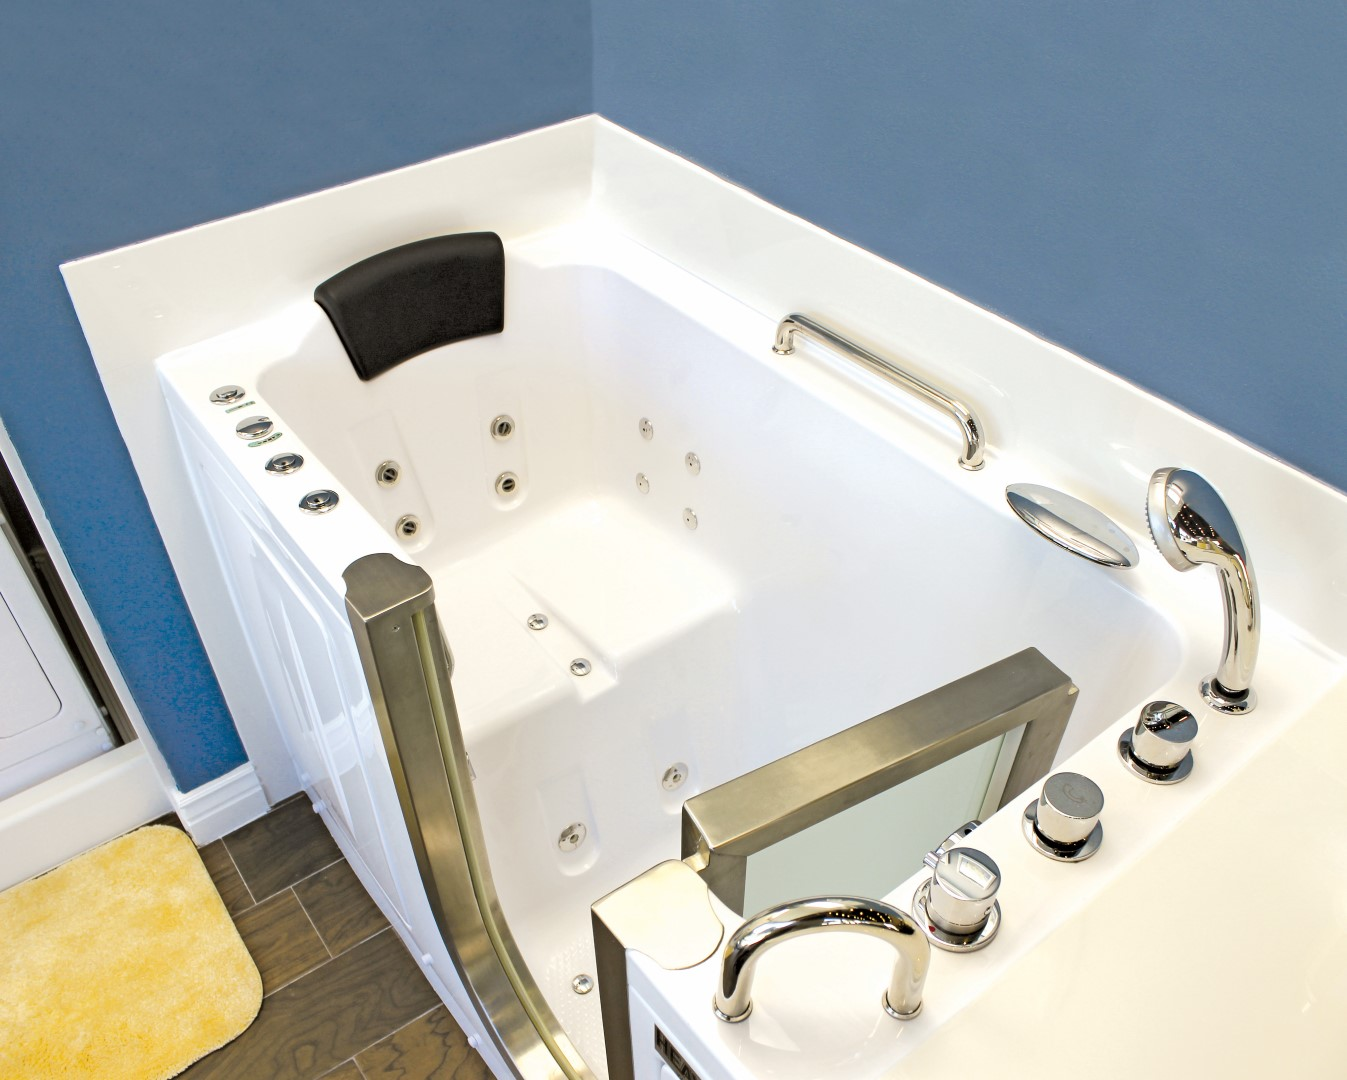 comfort items complement portable bathtubs